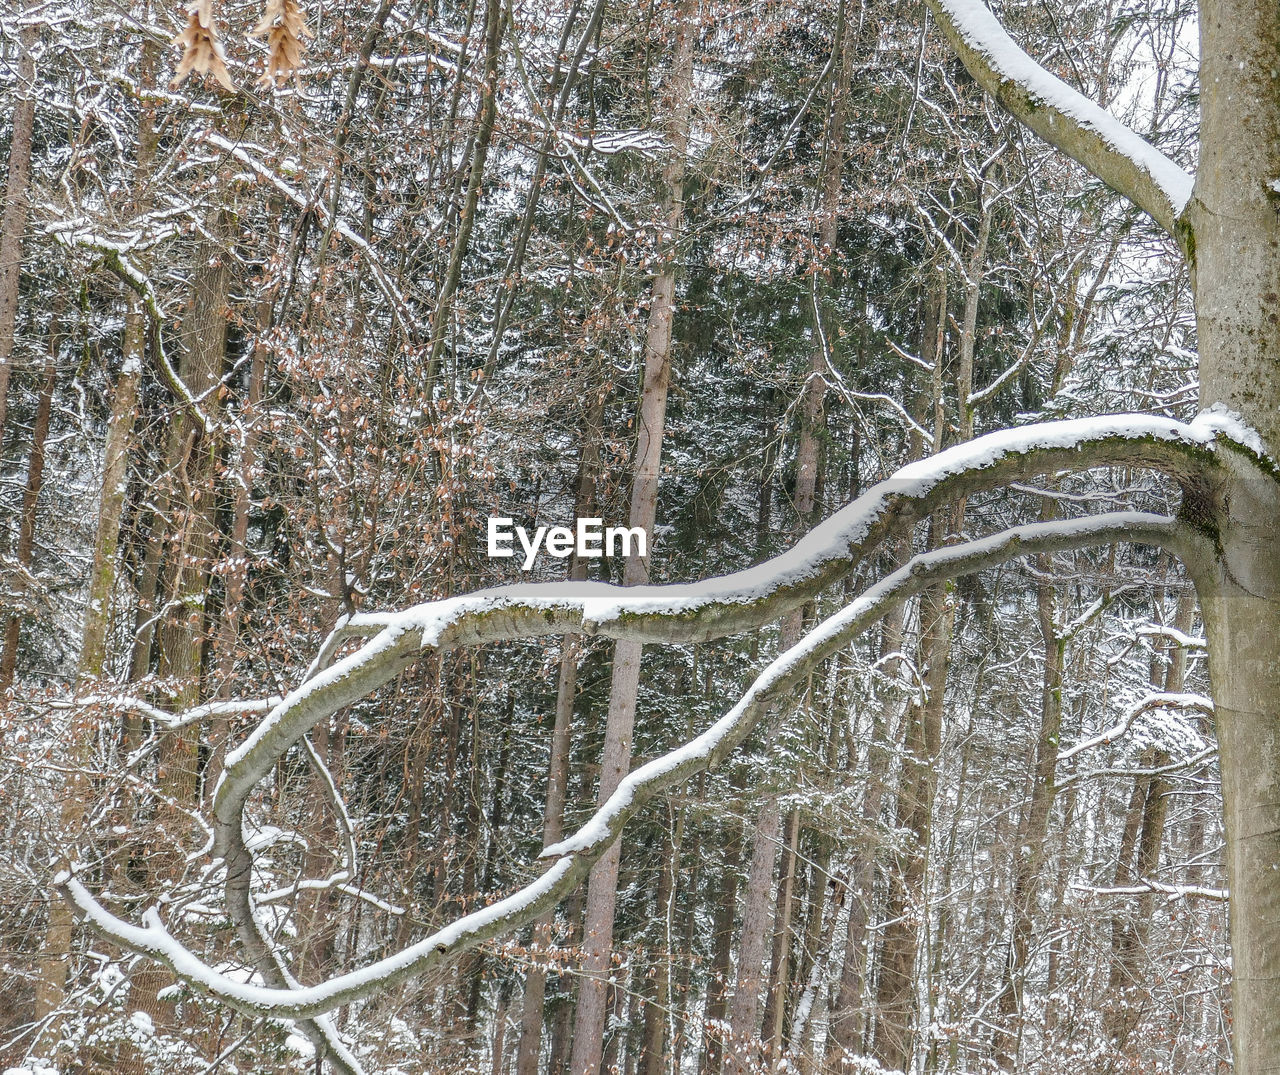 tree, branch, winter, nature, forest, cold temperature, beauty in nature, day, no people, snow, tranquility, outdoors, bare tree, scenics, close-up